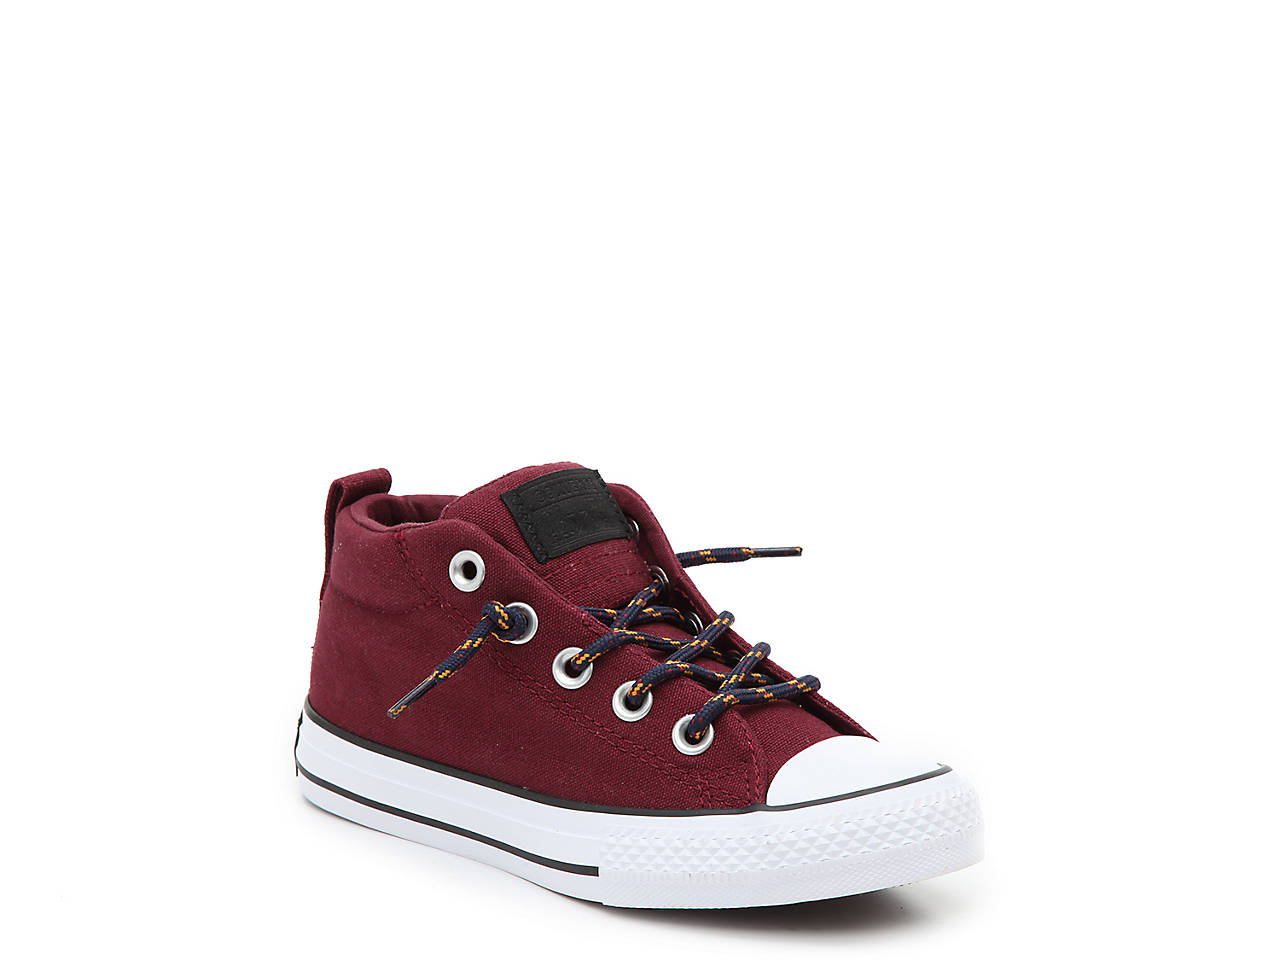 29d3f4b95feb Converse Chuck Taylor All Star Street Mid Toddler   Youth Slip-On ...